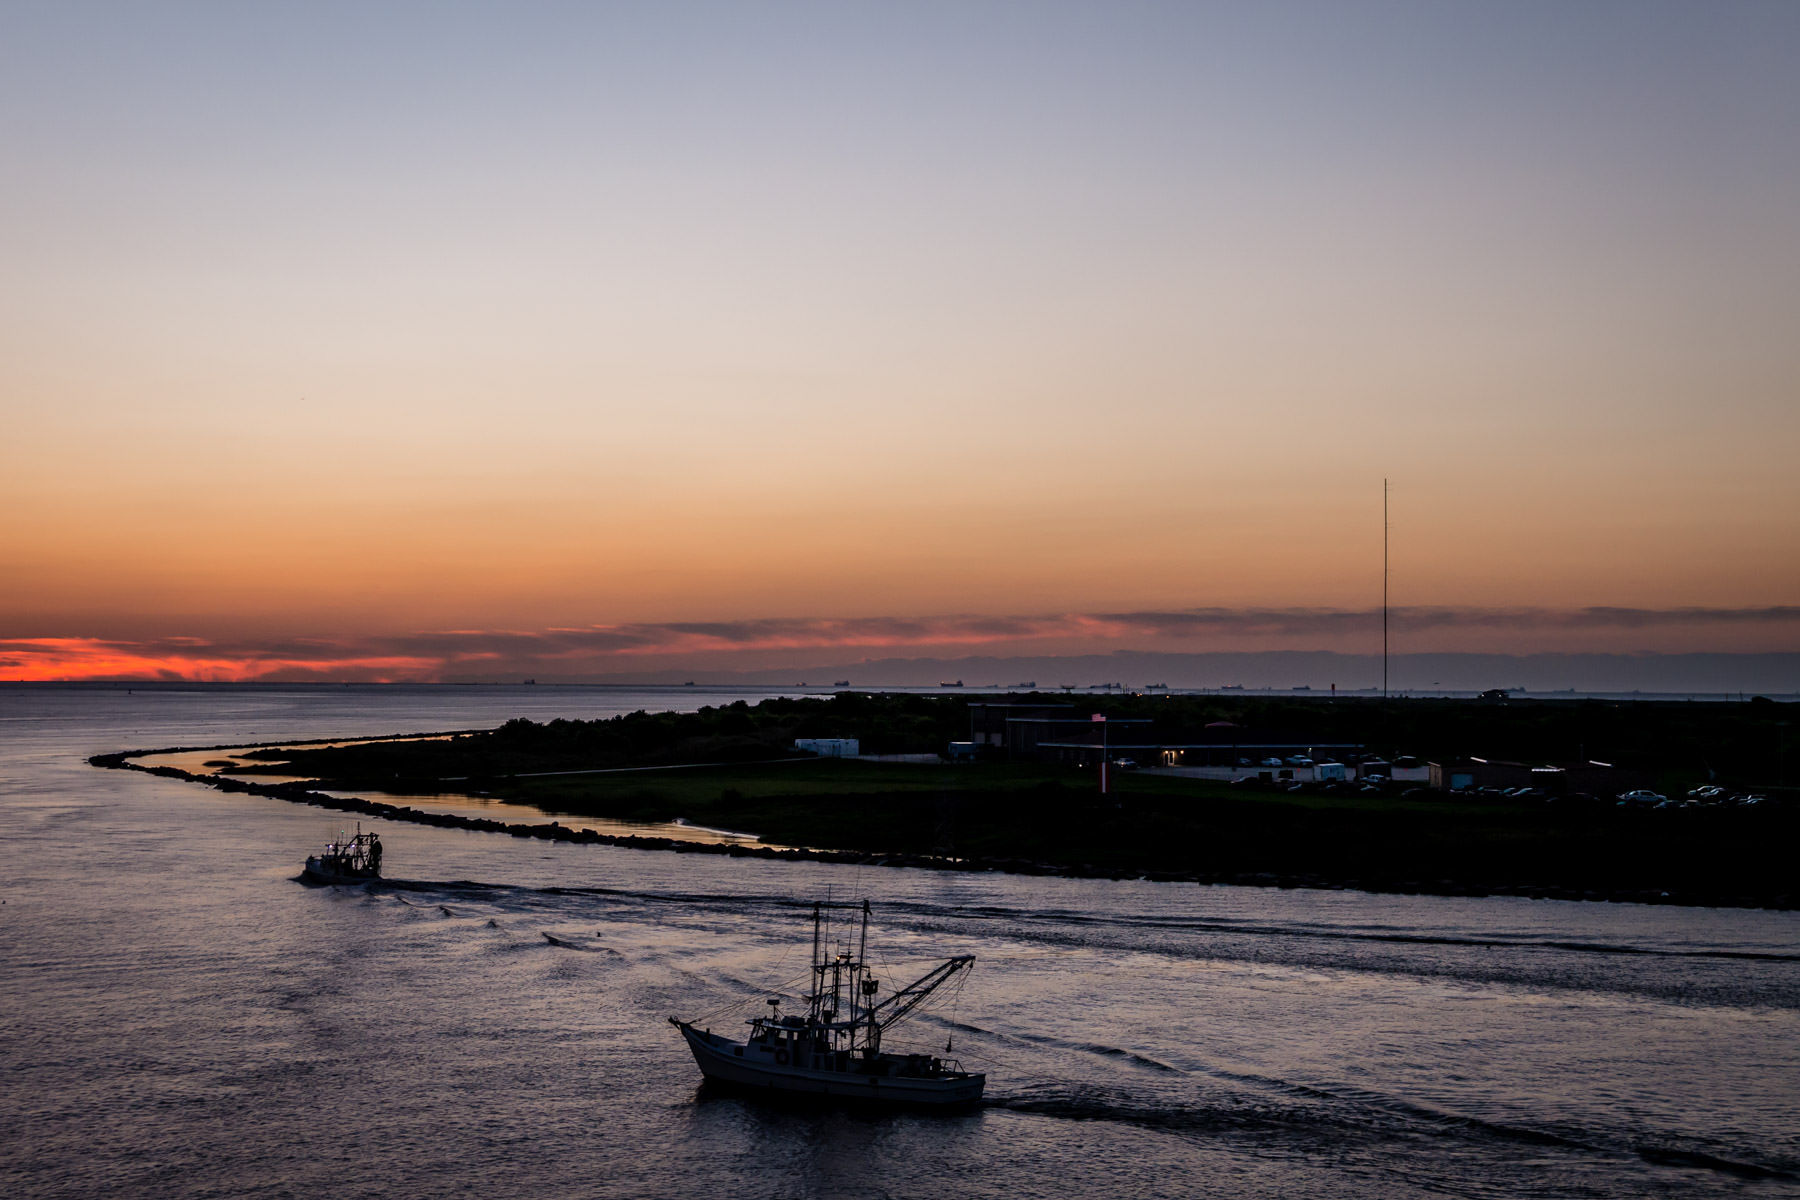 Shrimp boats head out into the Gulf of Mexico as dawn breaks over Galveston Island, Texas.